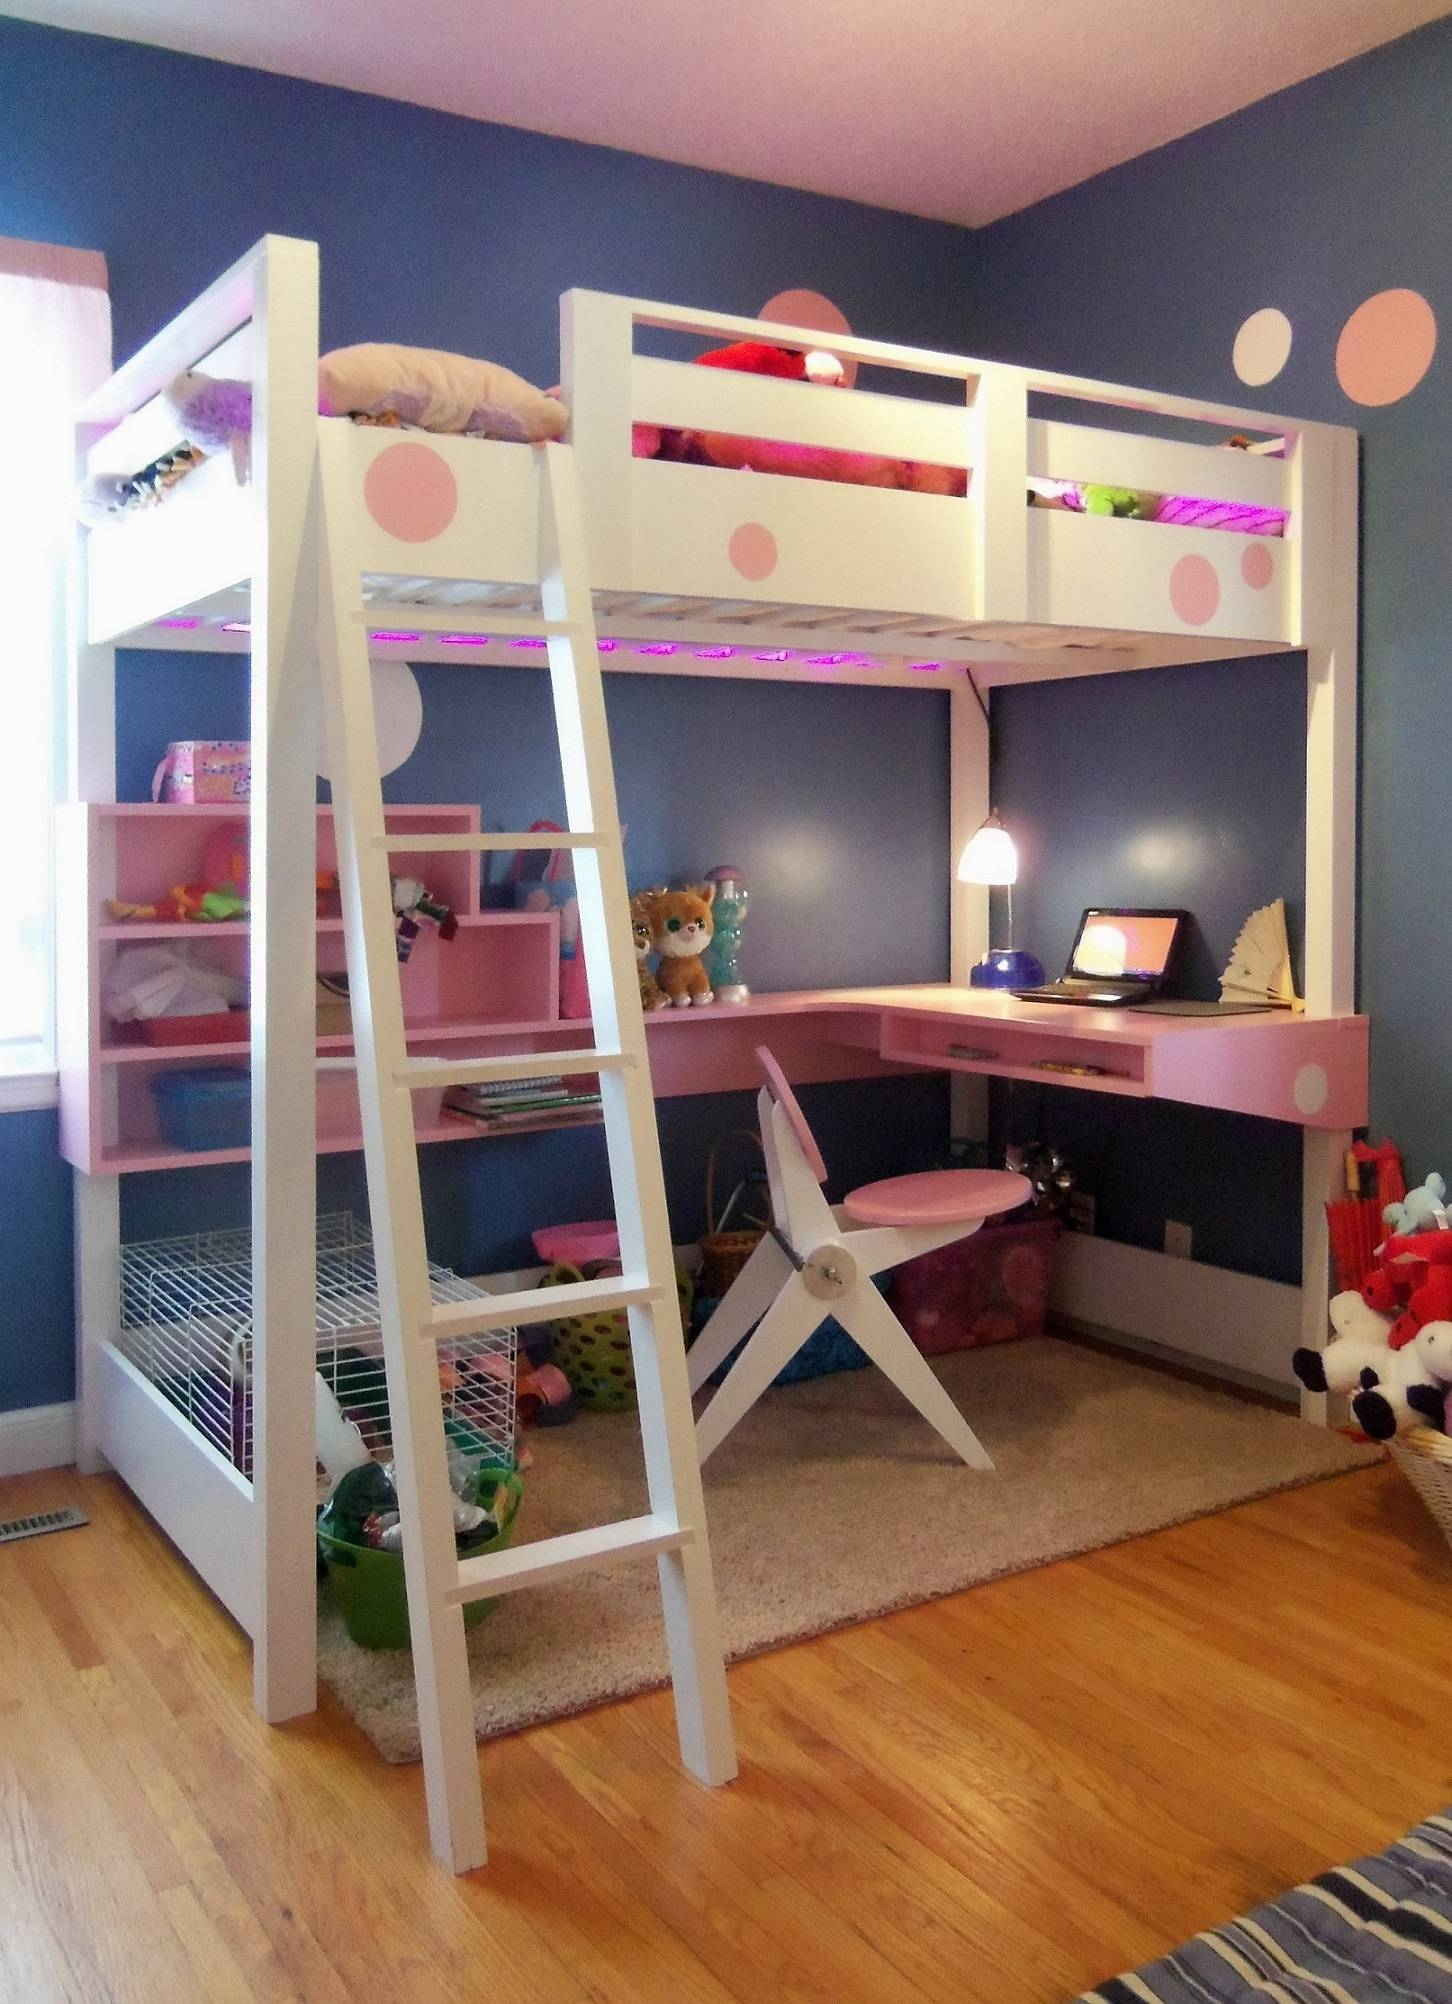 Bunk Beds With Desk And Sofa Underneath ~ Loversiq regarding Bunk Bed With Sofas Underneath (Image 9 of 15)